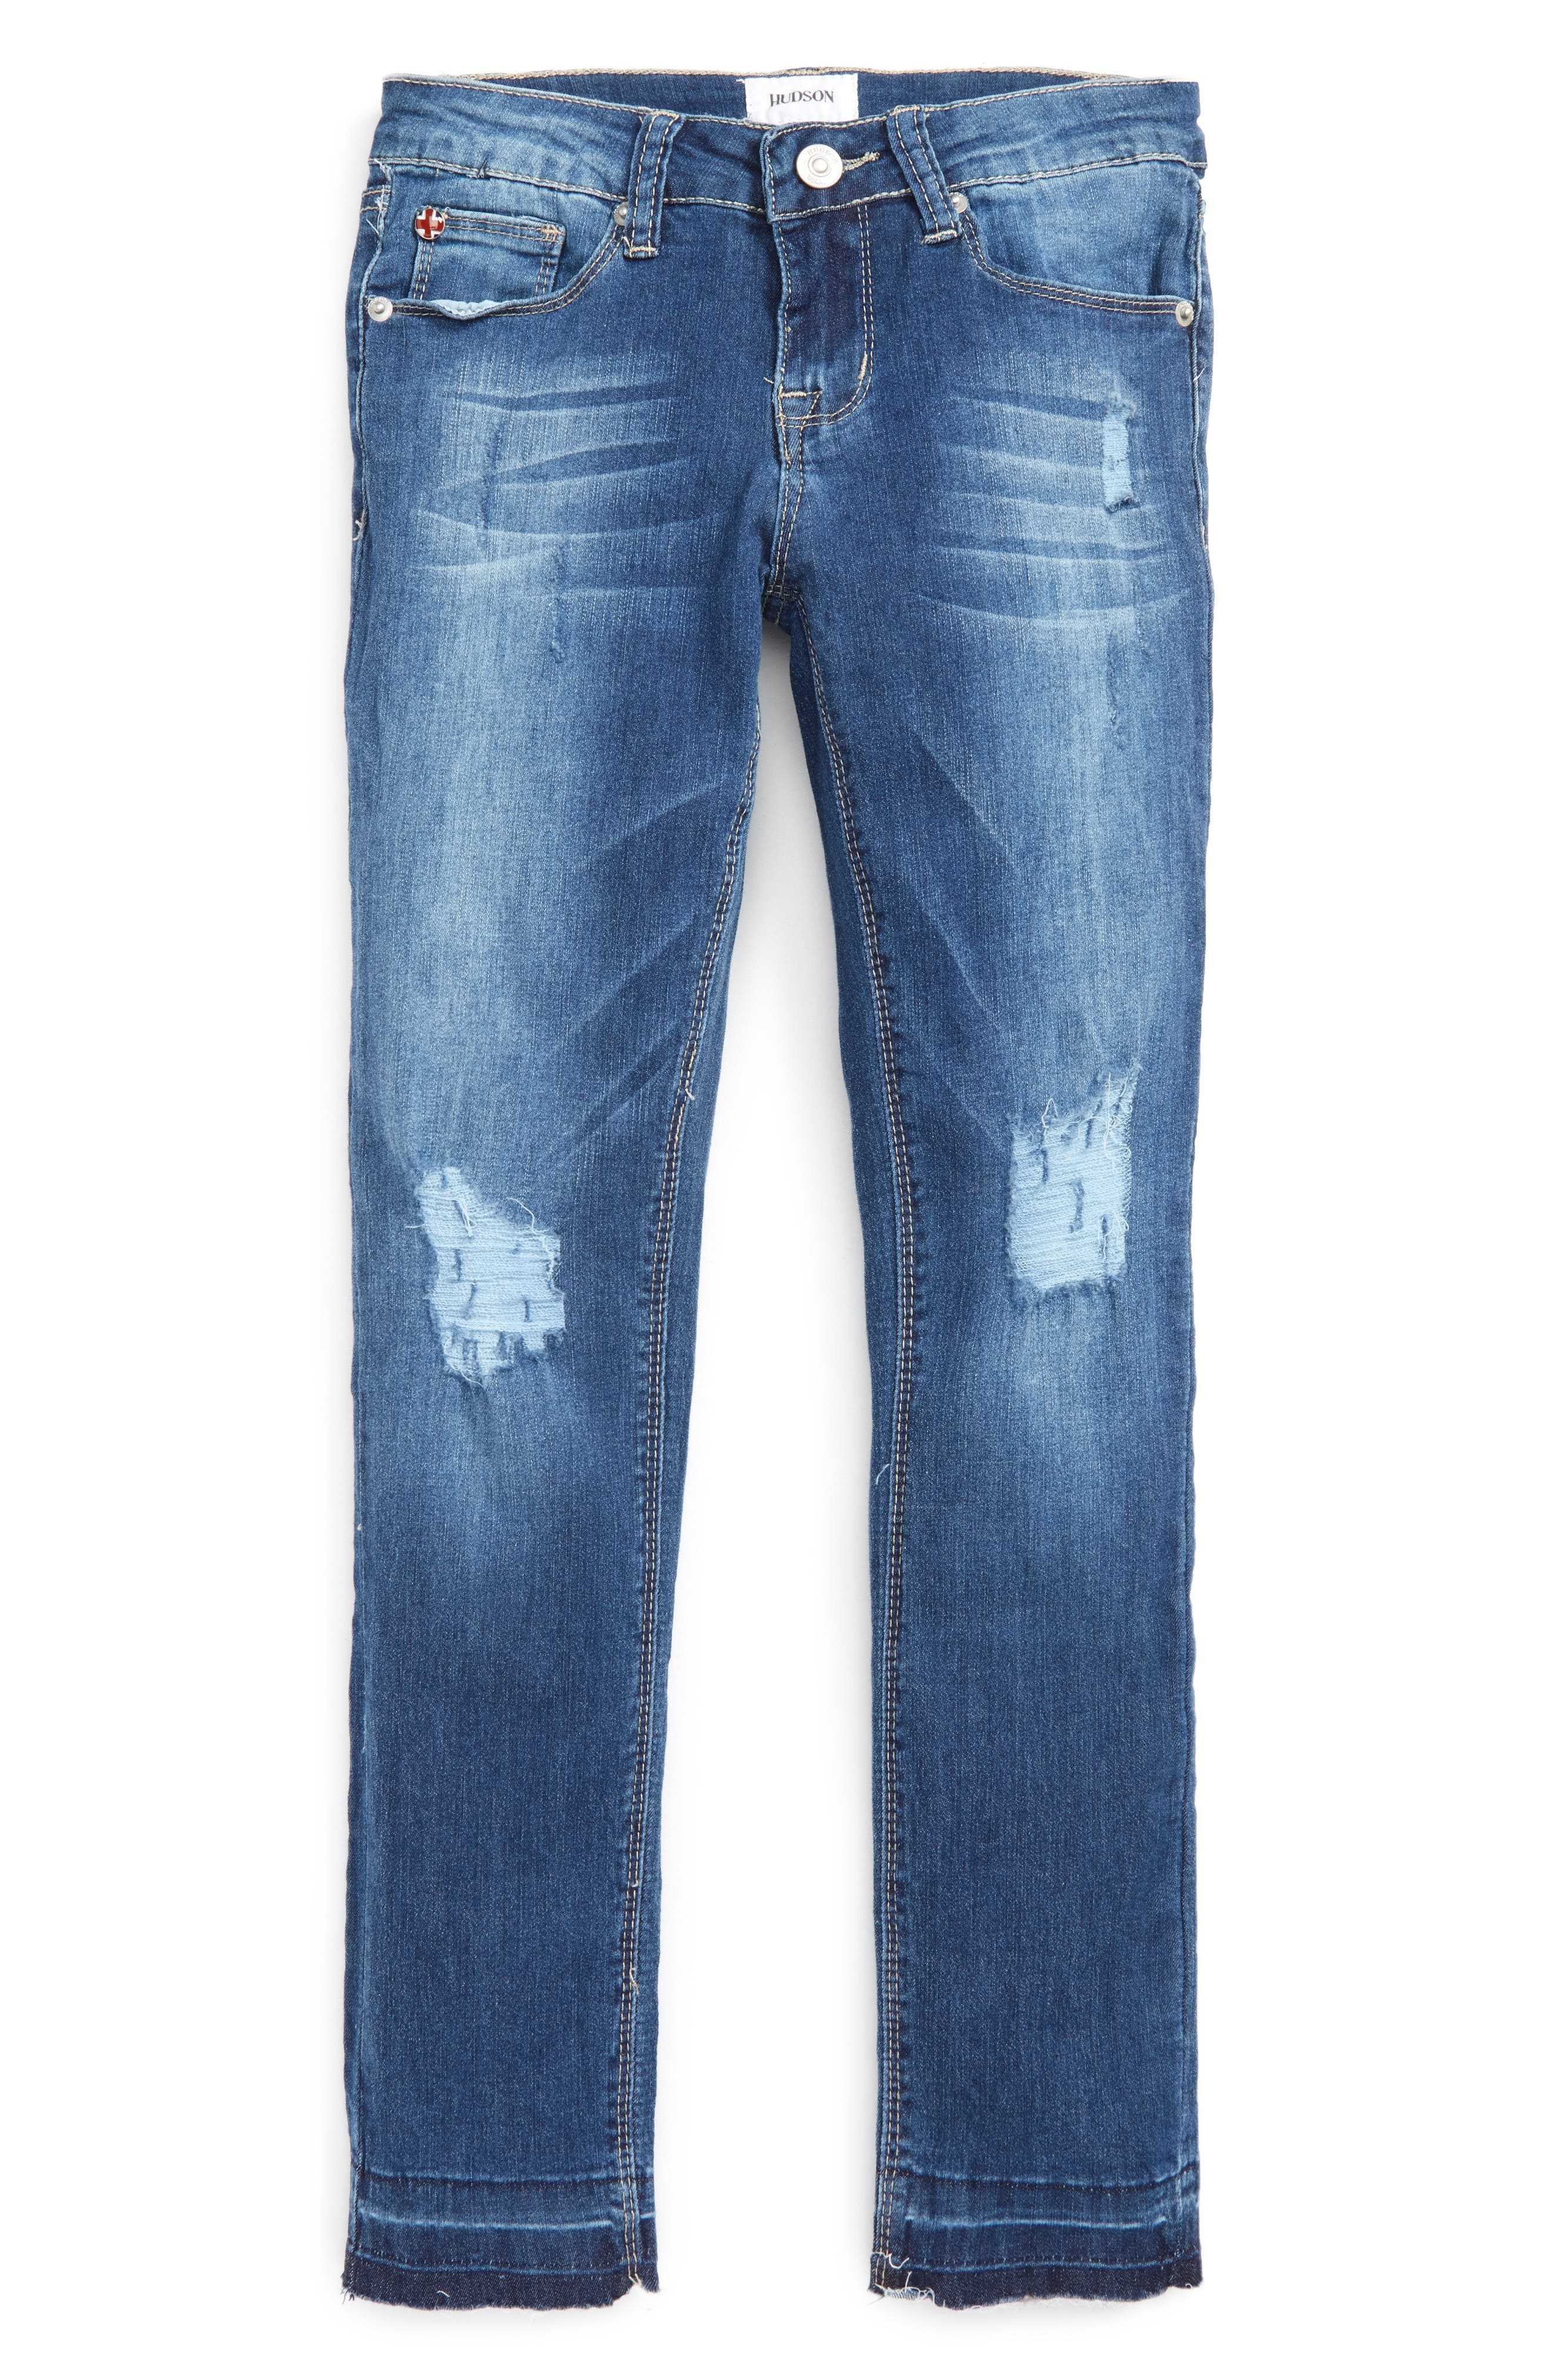 Nico Ankle Skinny Jeans,                             Main thumbnail 1, color,                             491